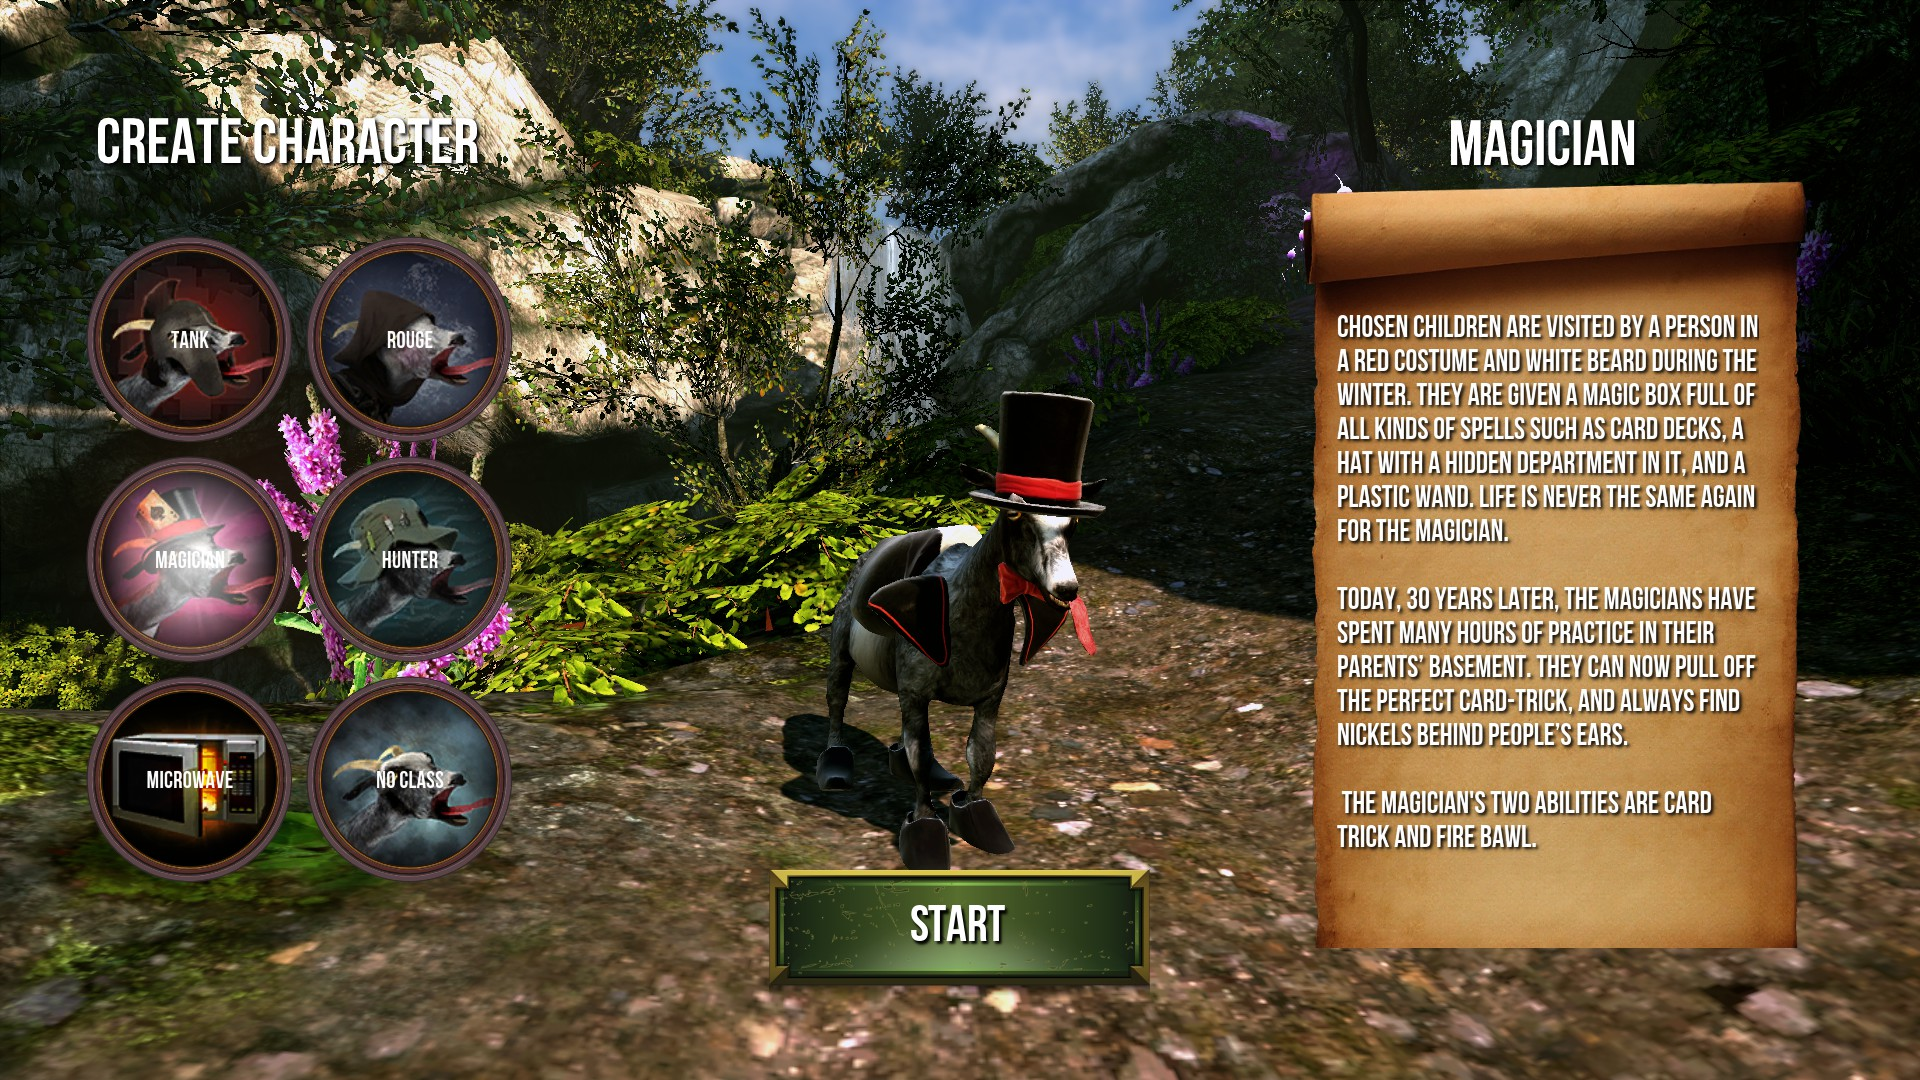 Goat MMO Simulator impressions: Massively moronic | Ars Technica